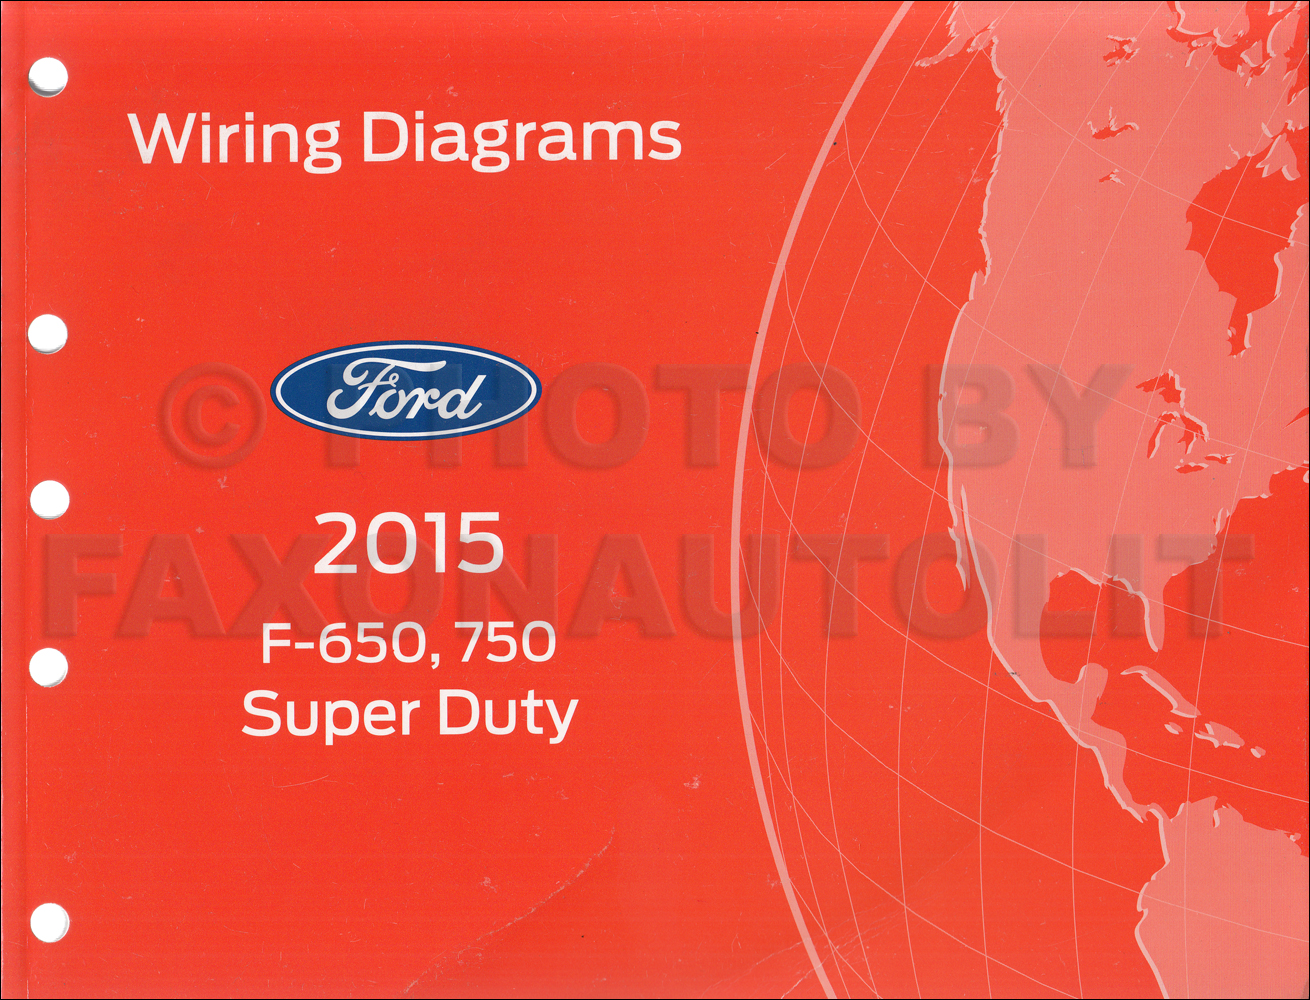 F650 Wire Diagram | Wiring Diagram F Wiring Diagram Stereo on